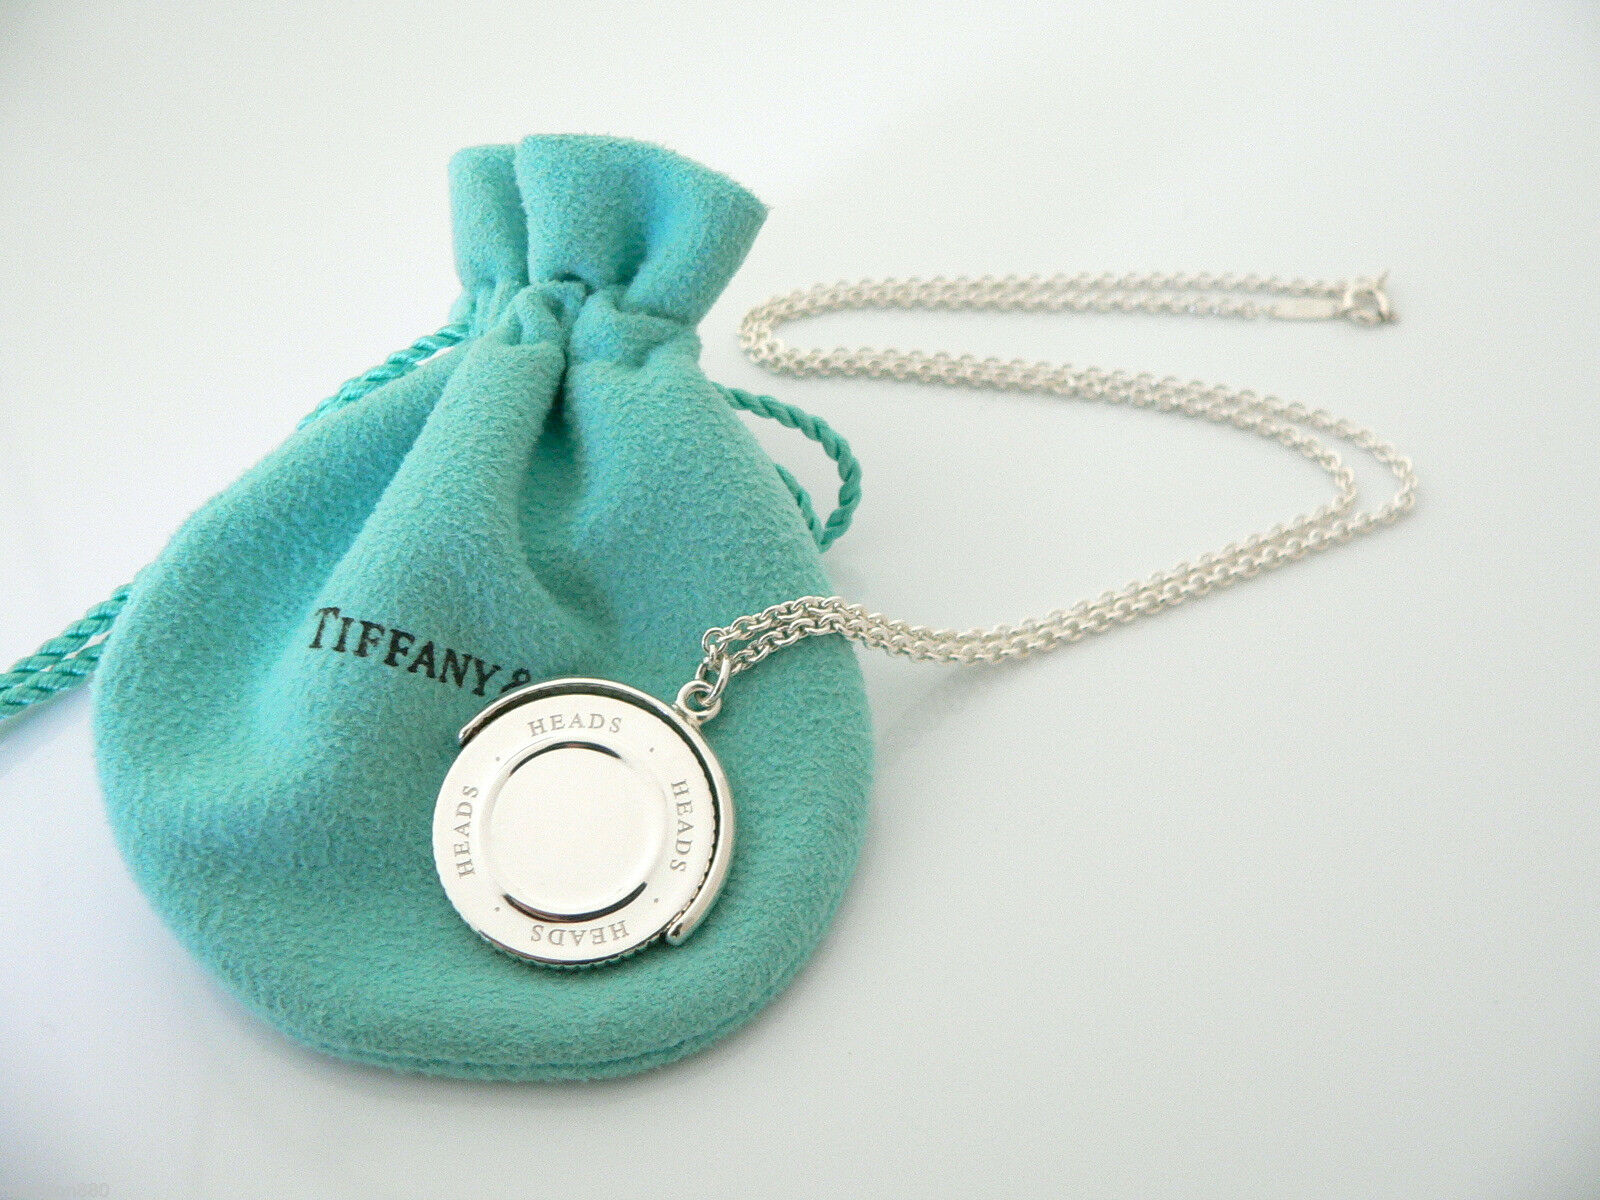 Tiffany & Co Silver Heads Tails Coin Flip Necklace Pendant Charm Chain Rare Gift